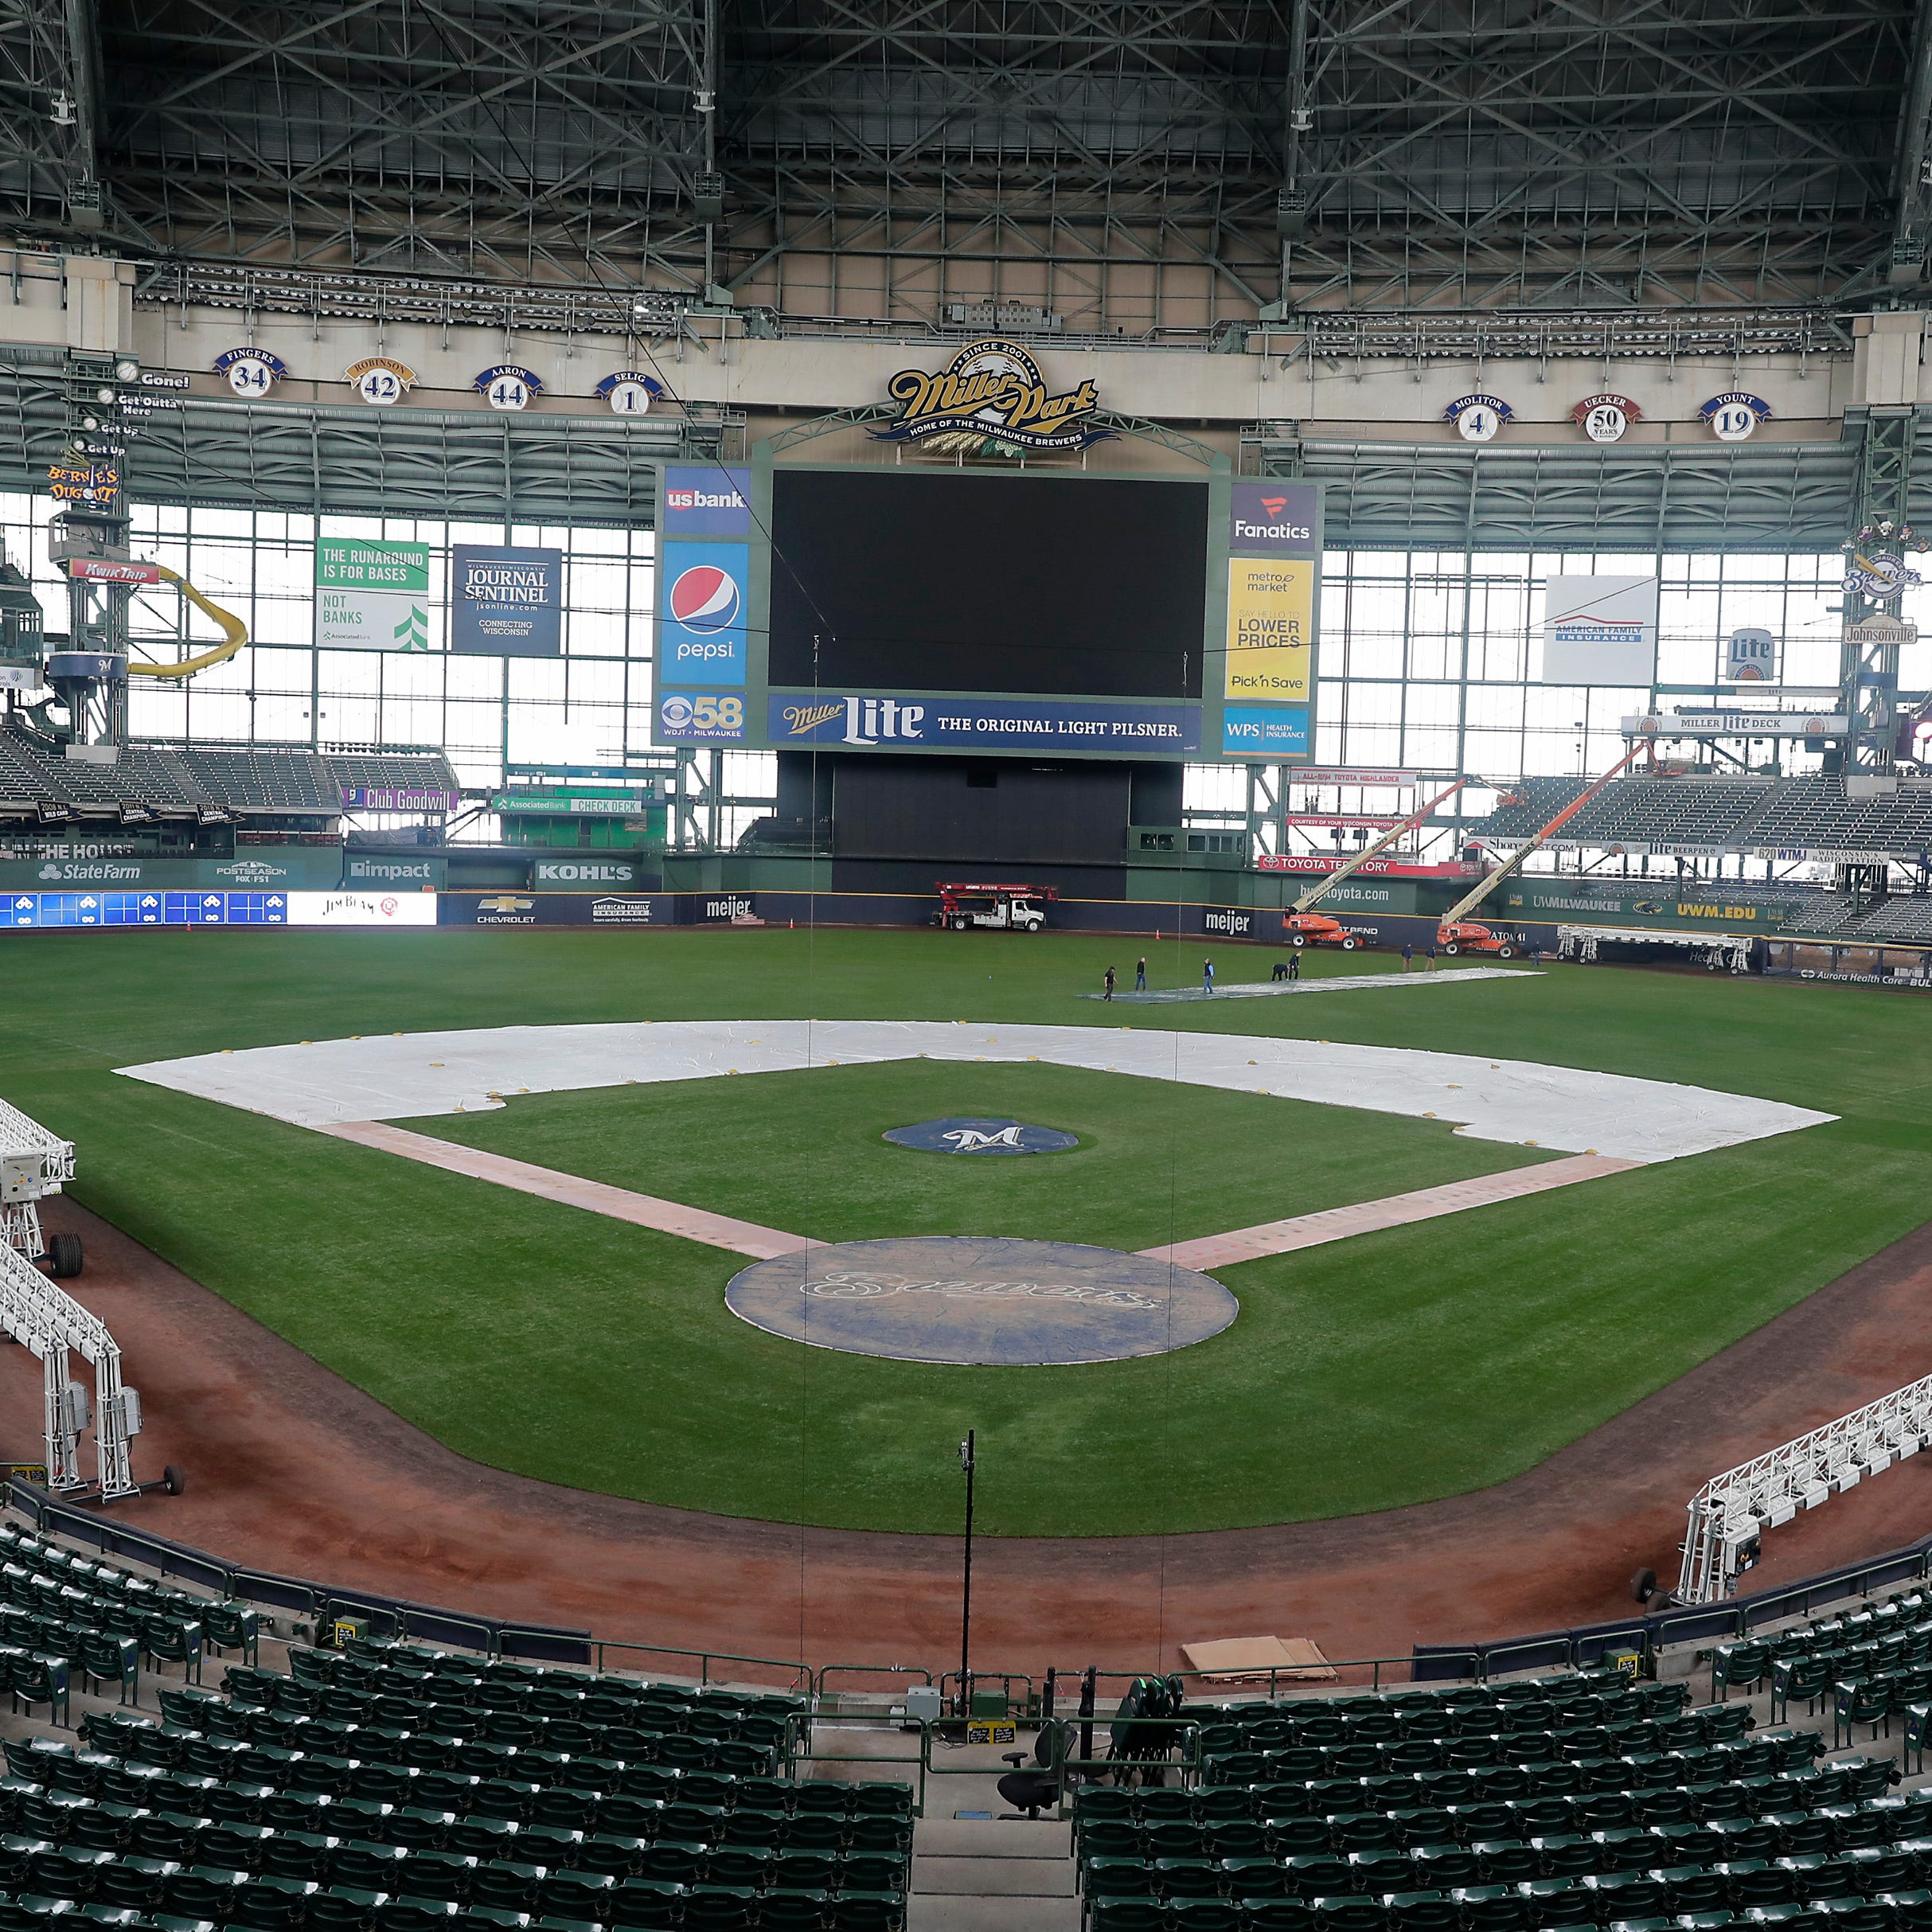 The Miller Park stadium tax has been in place for 22 years. It will likely end next year